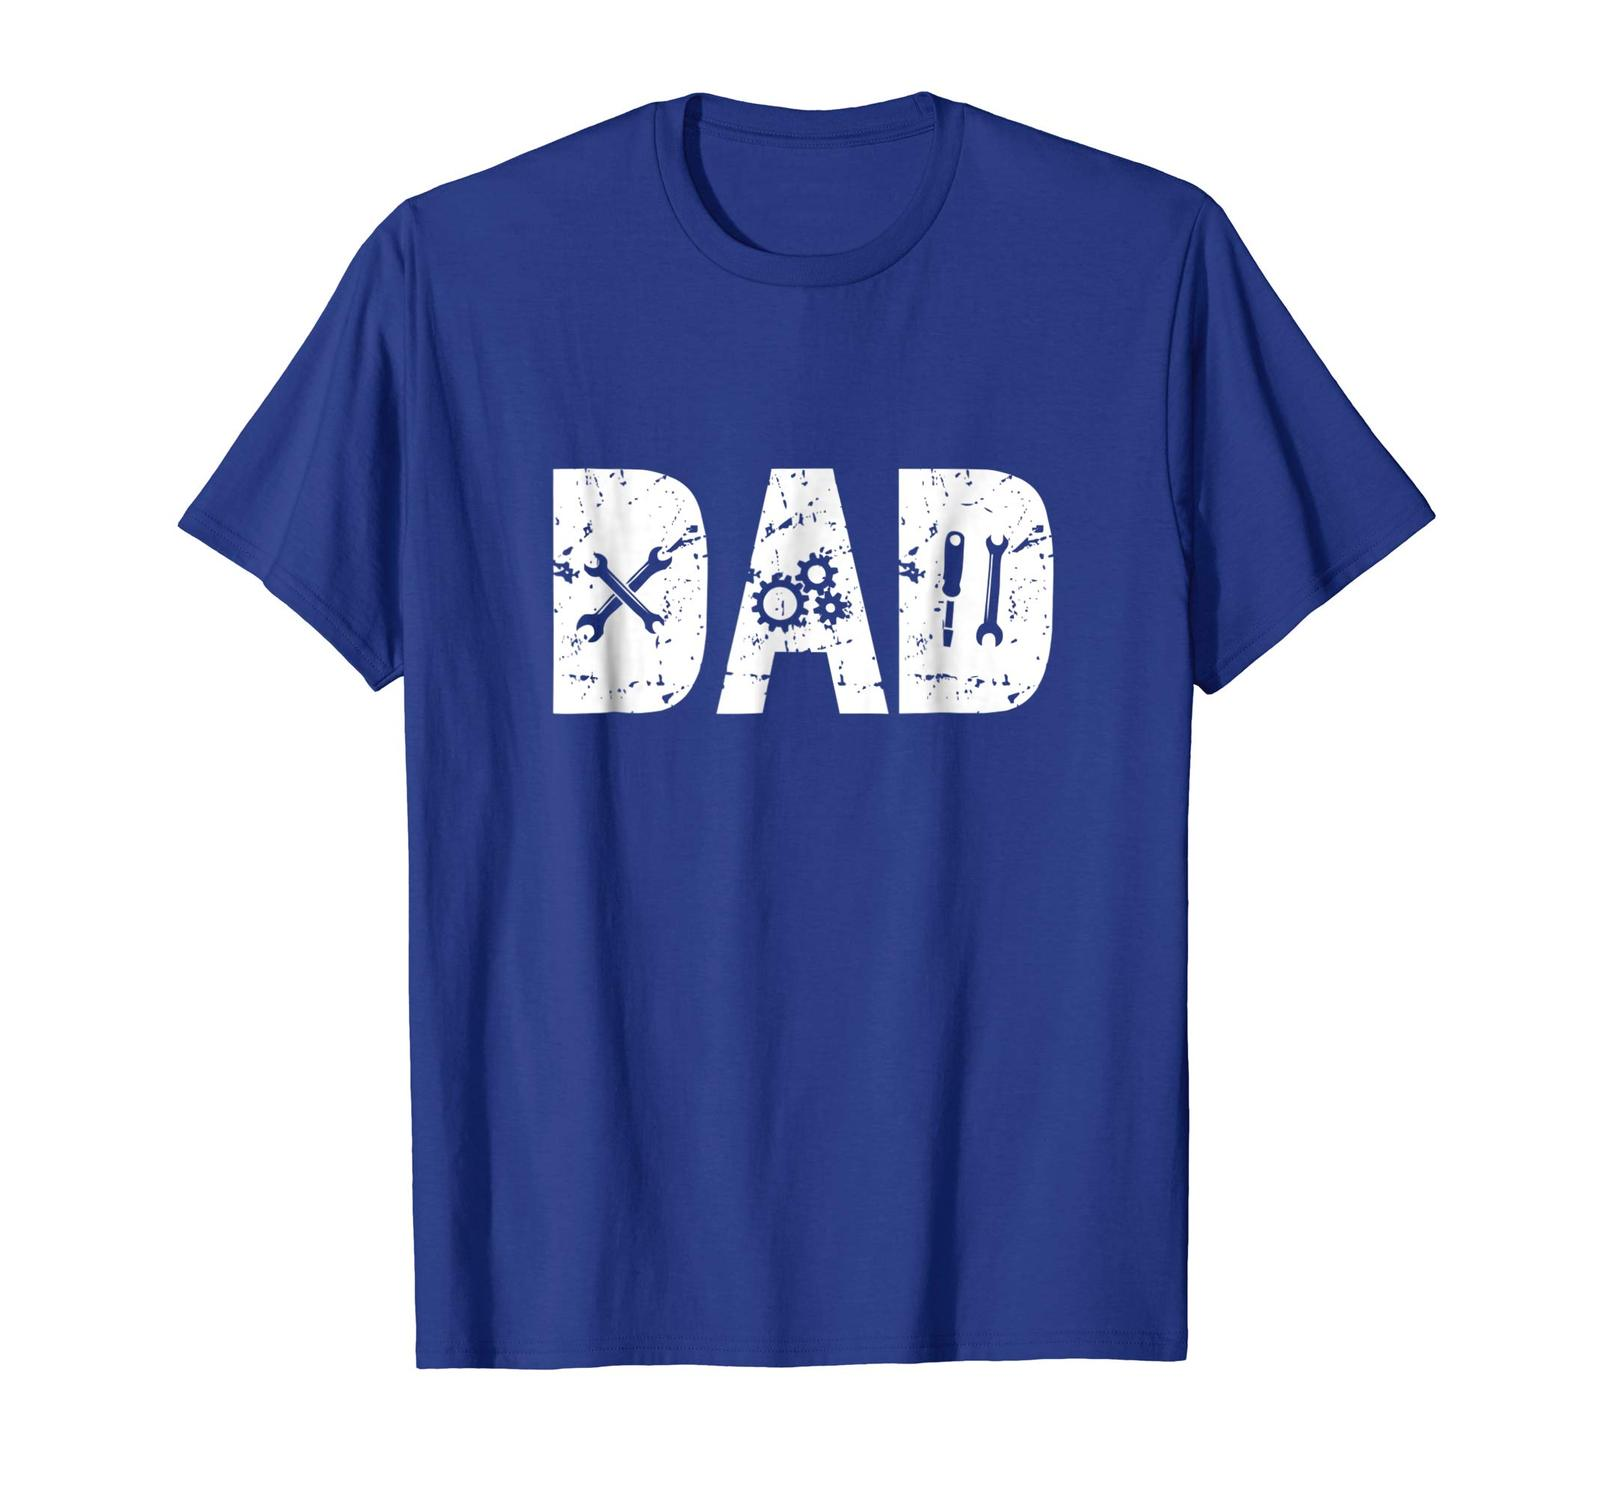 Dad Shirts - Funny Dad Gift Mechanic Shirts for Men Fathers Day 2018 Tee Men image 4